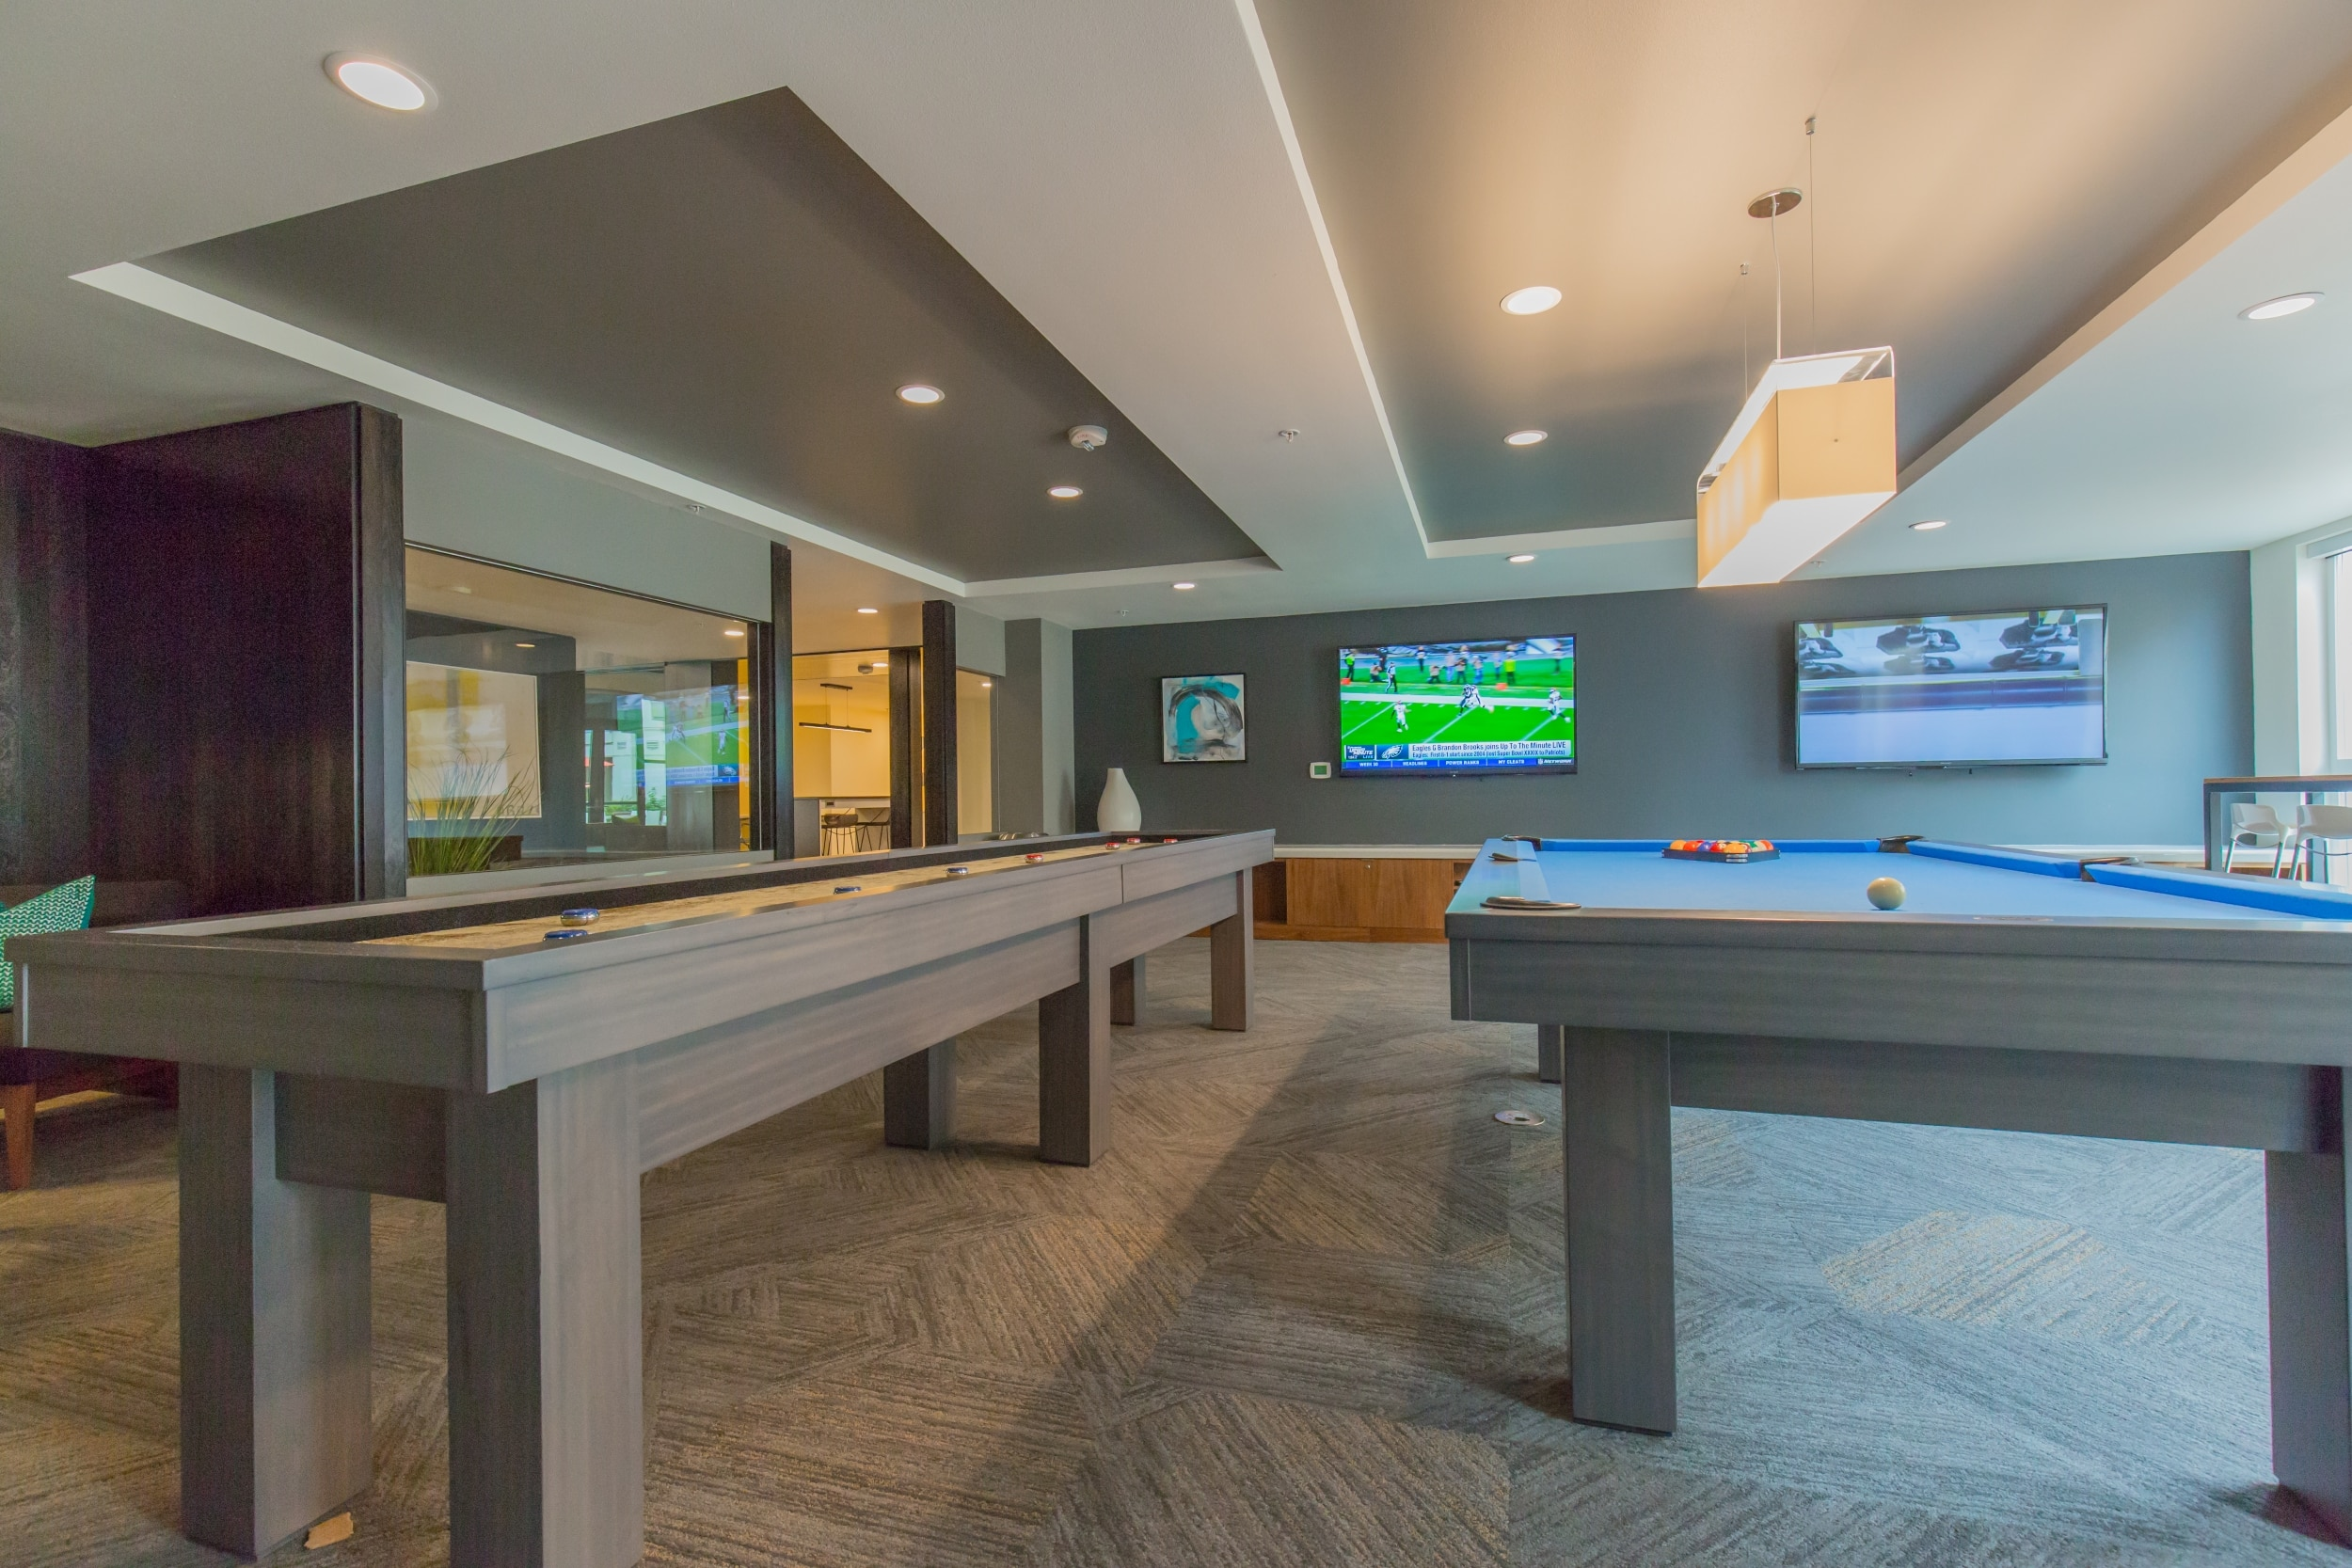 Game Room with Billiards, Shuffle Board and Large Screen TVs